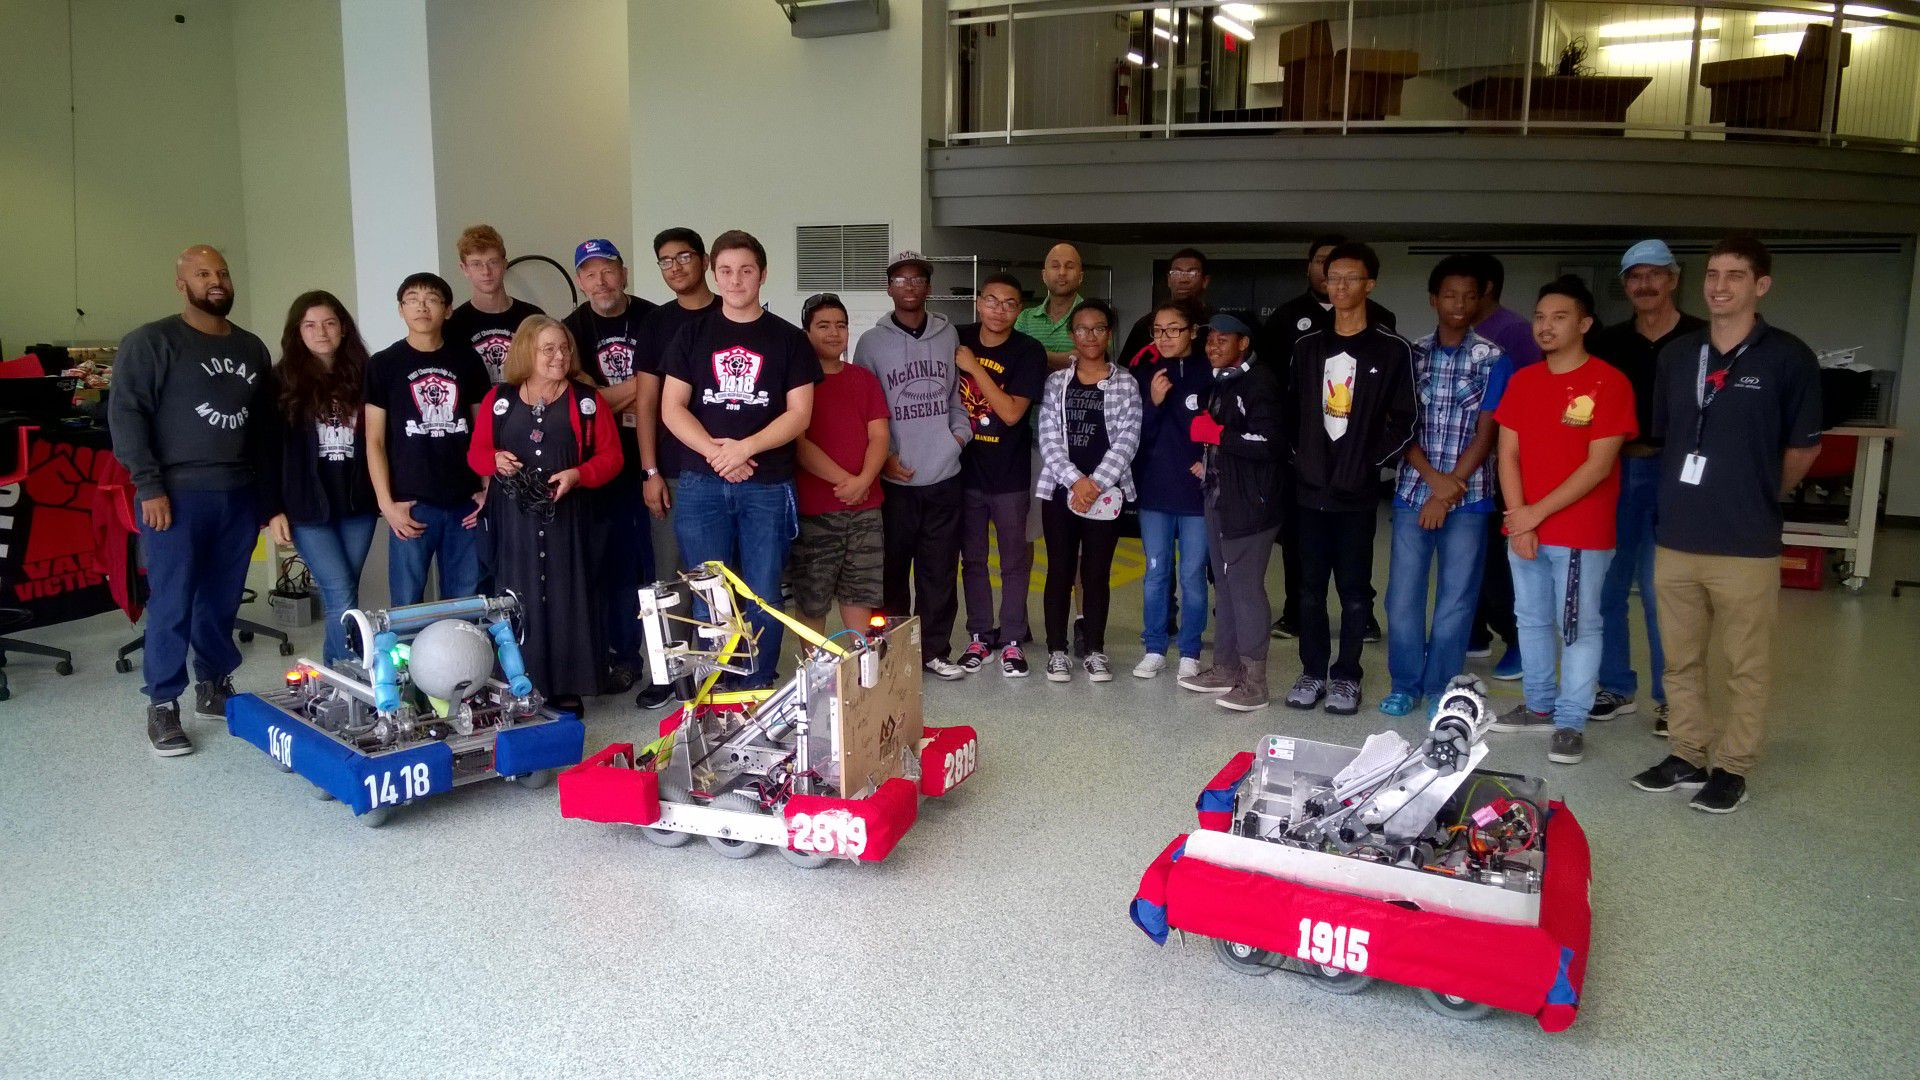 FRC Teams 1418, 1915, and 2819 posing behind their robots.